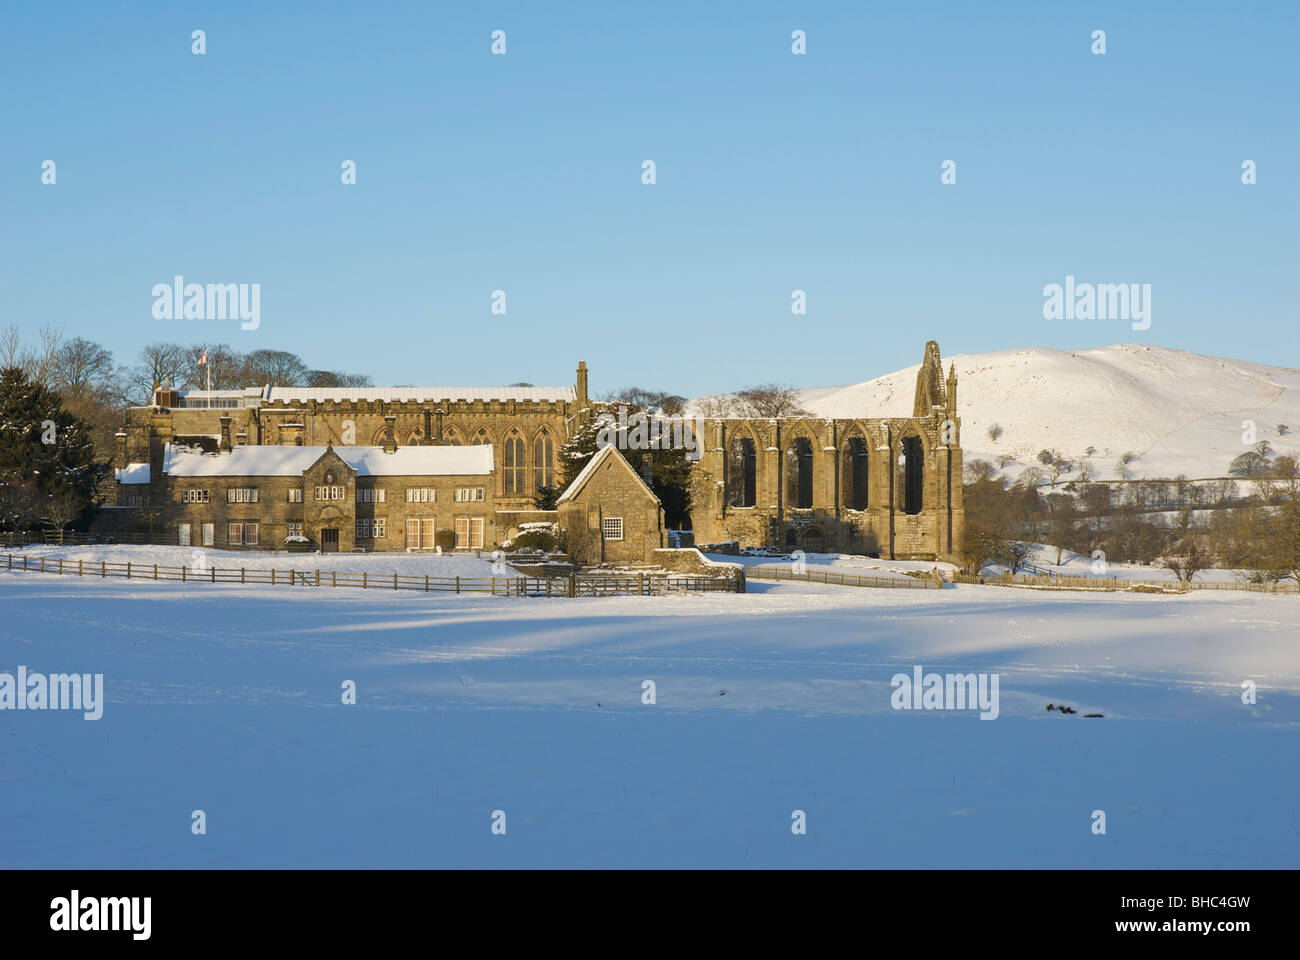 Bolton Abbey in winter, Wharfedale, North Yorkshire, England UK - Stock Image